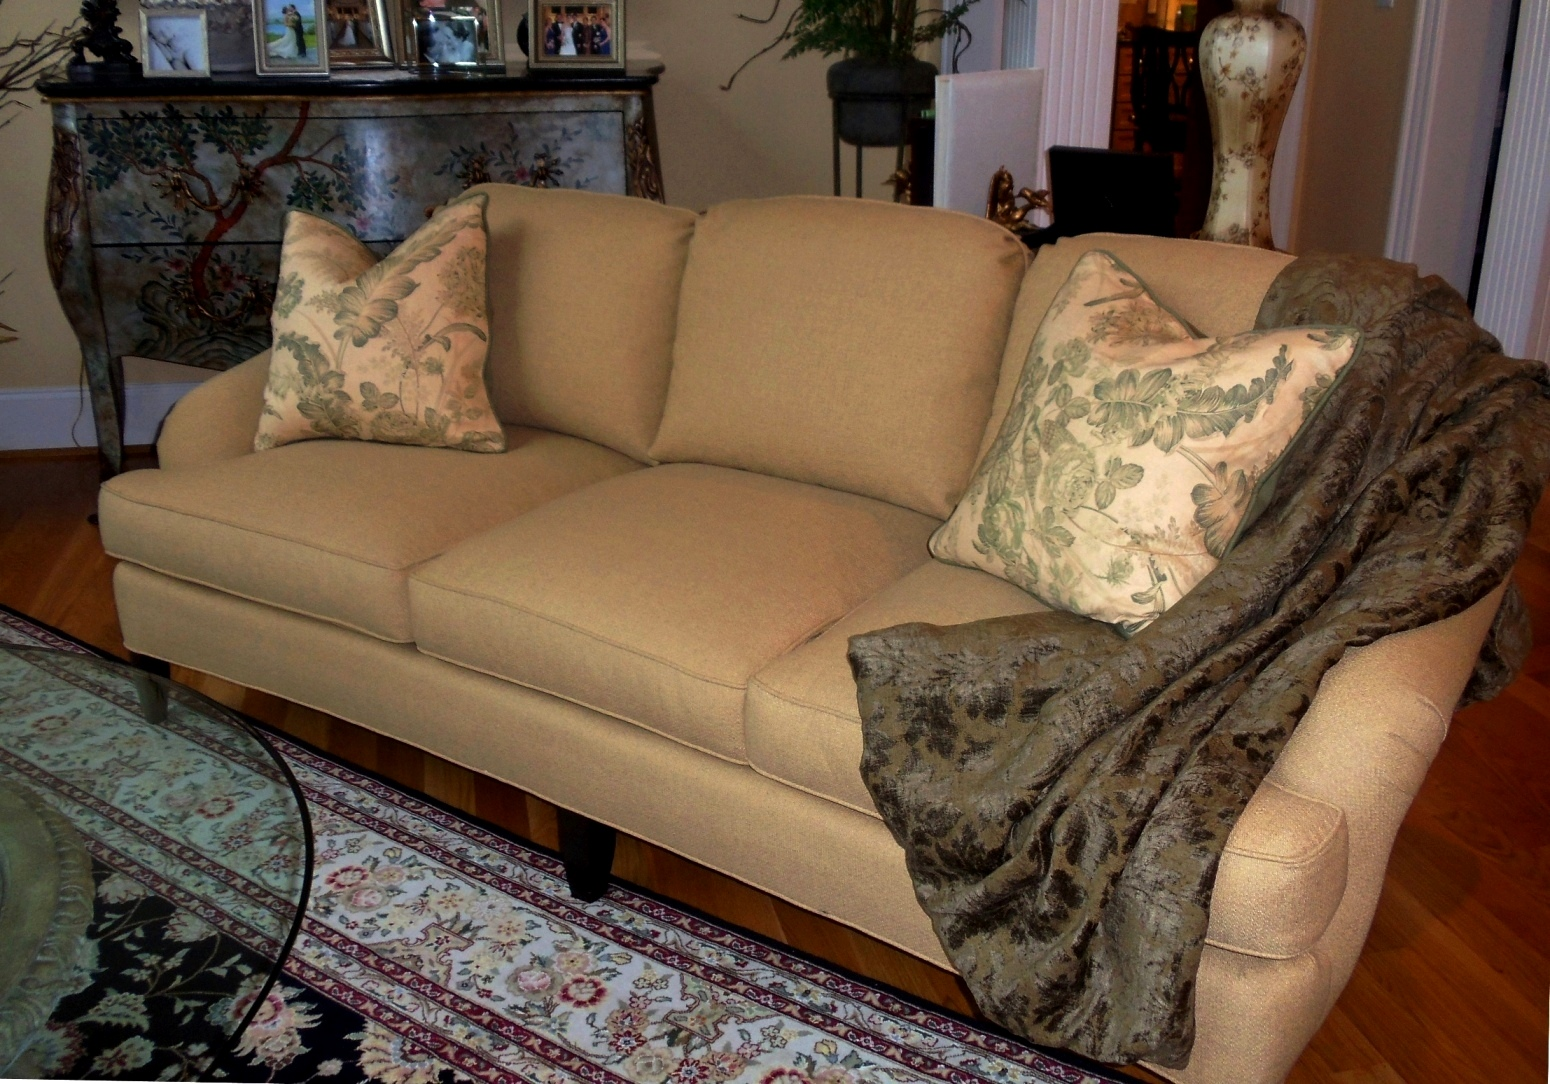 Recovering Sofa Cost Duresta To Recover Sofa Uk Living